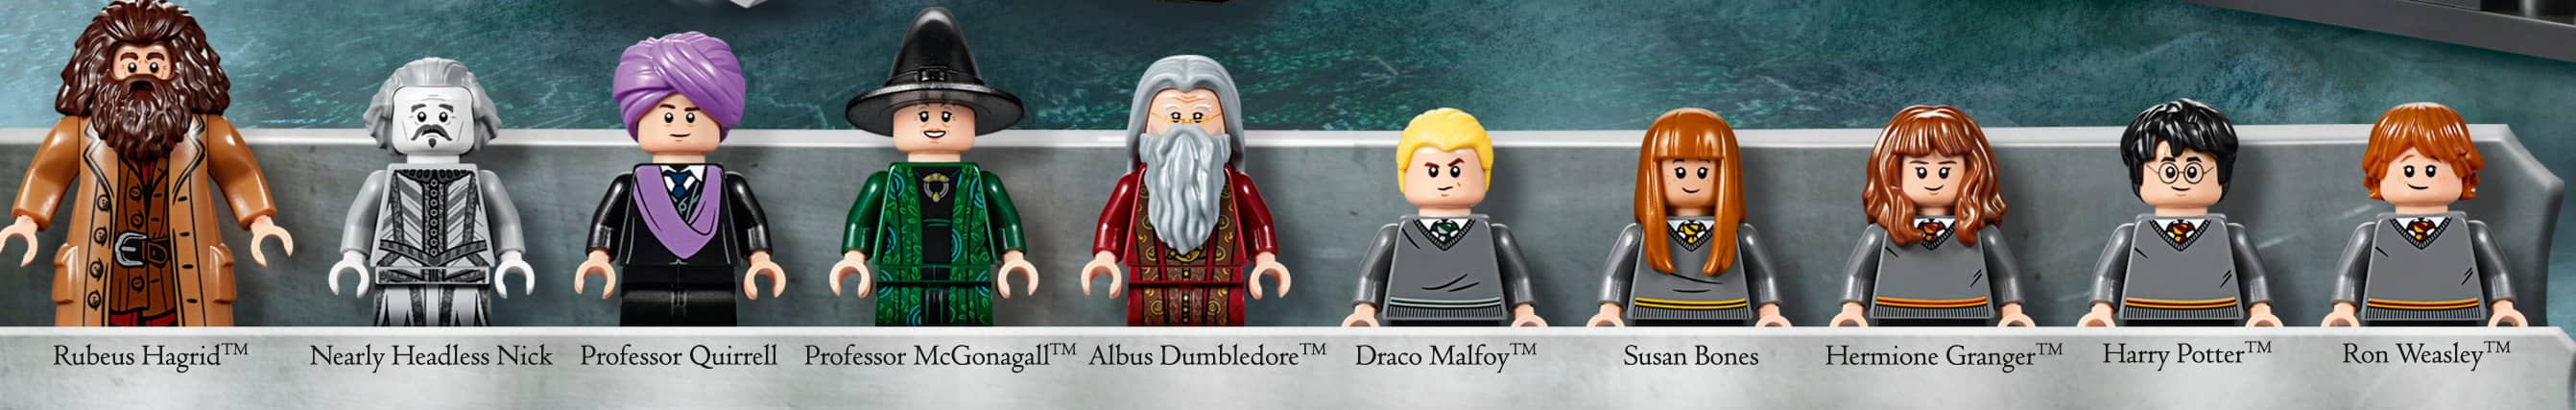 die LEGO® Harry Potter (TM) Charaktere